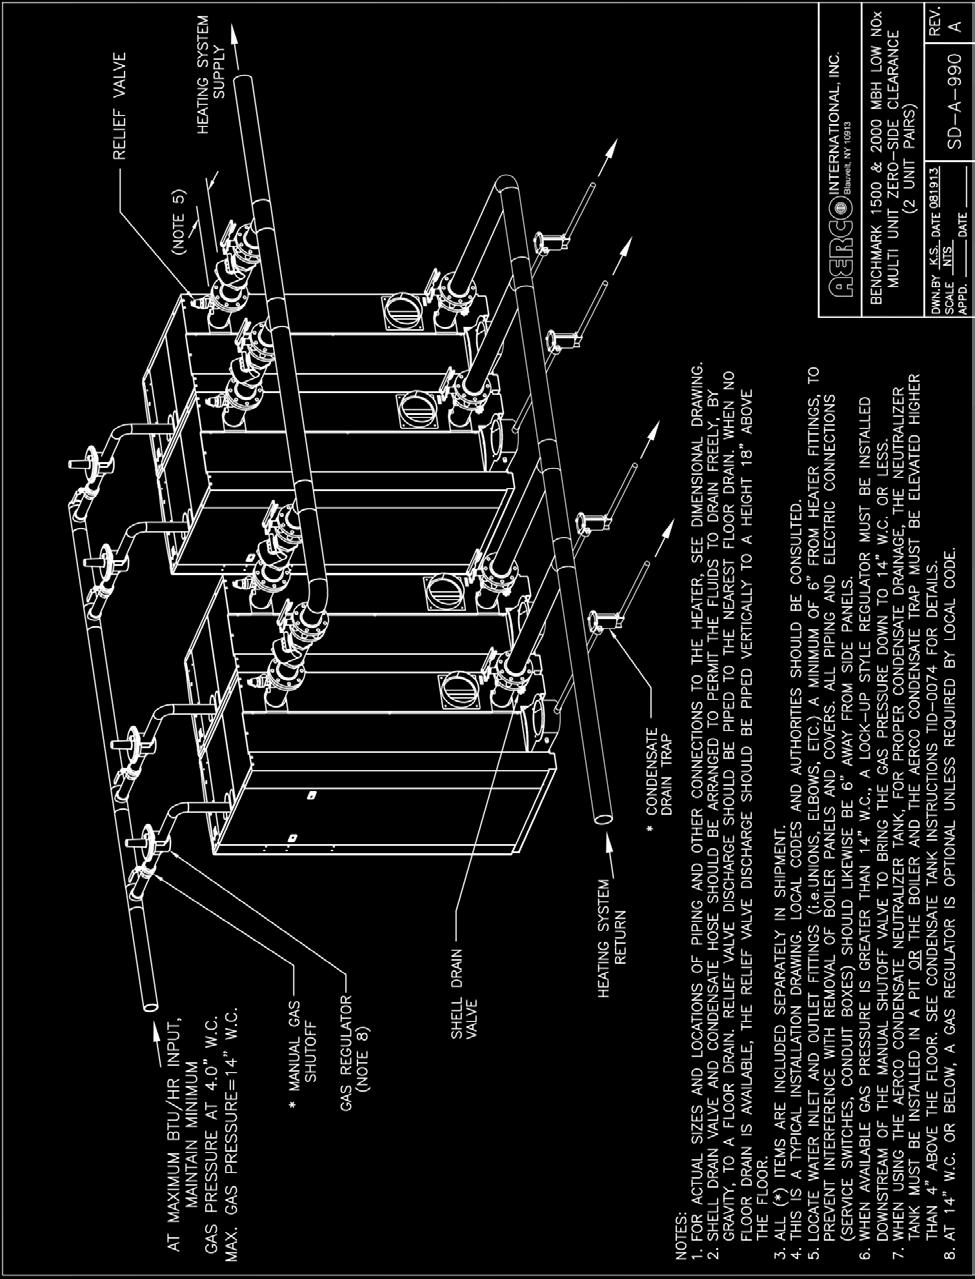 User Manual Benchmark 1500 And Gas Fired Boilers Wiring Harness Benchmarking Appendix I Piping Drawings Drawing Number Sd A 990 Rev Page 174